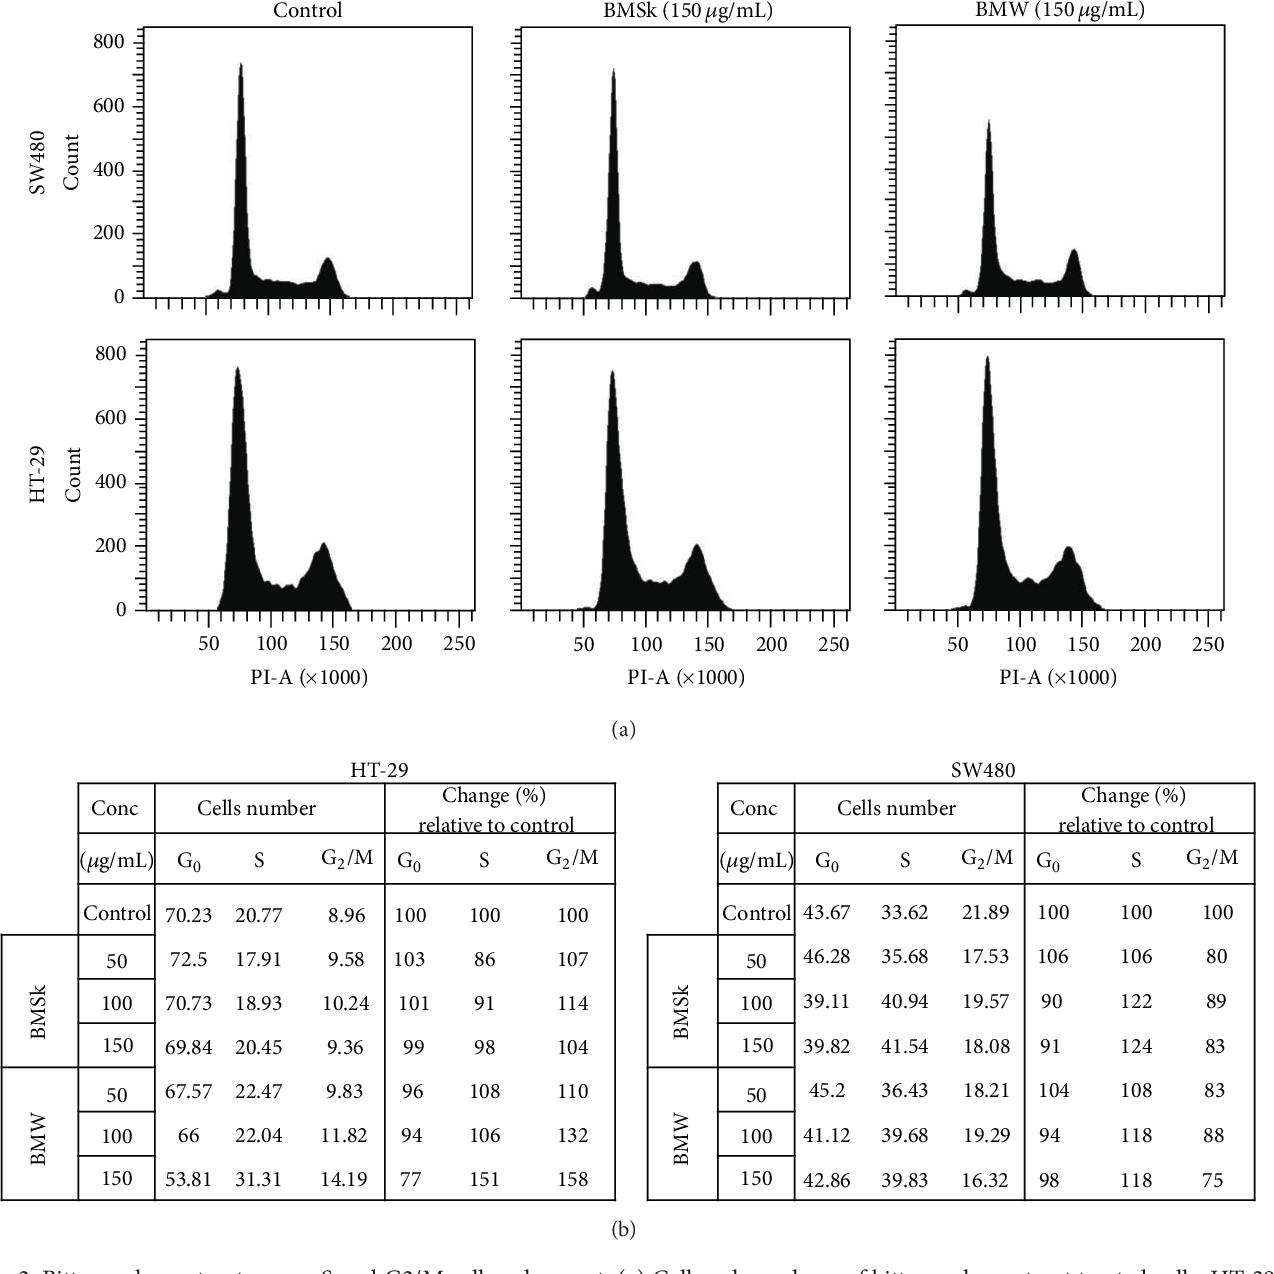 Pdf Methanolic Extracts Of Bitter Melon Inhibit Colon Cancer Stem Cells By Affecting Energy Homeostasis And Autophagy Semantic Scholar